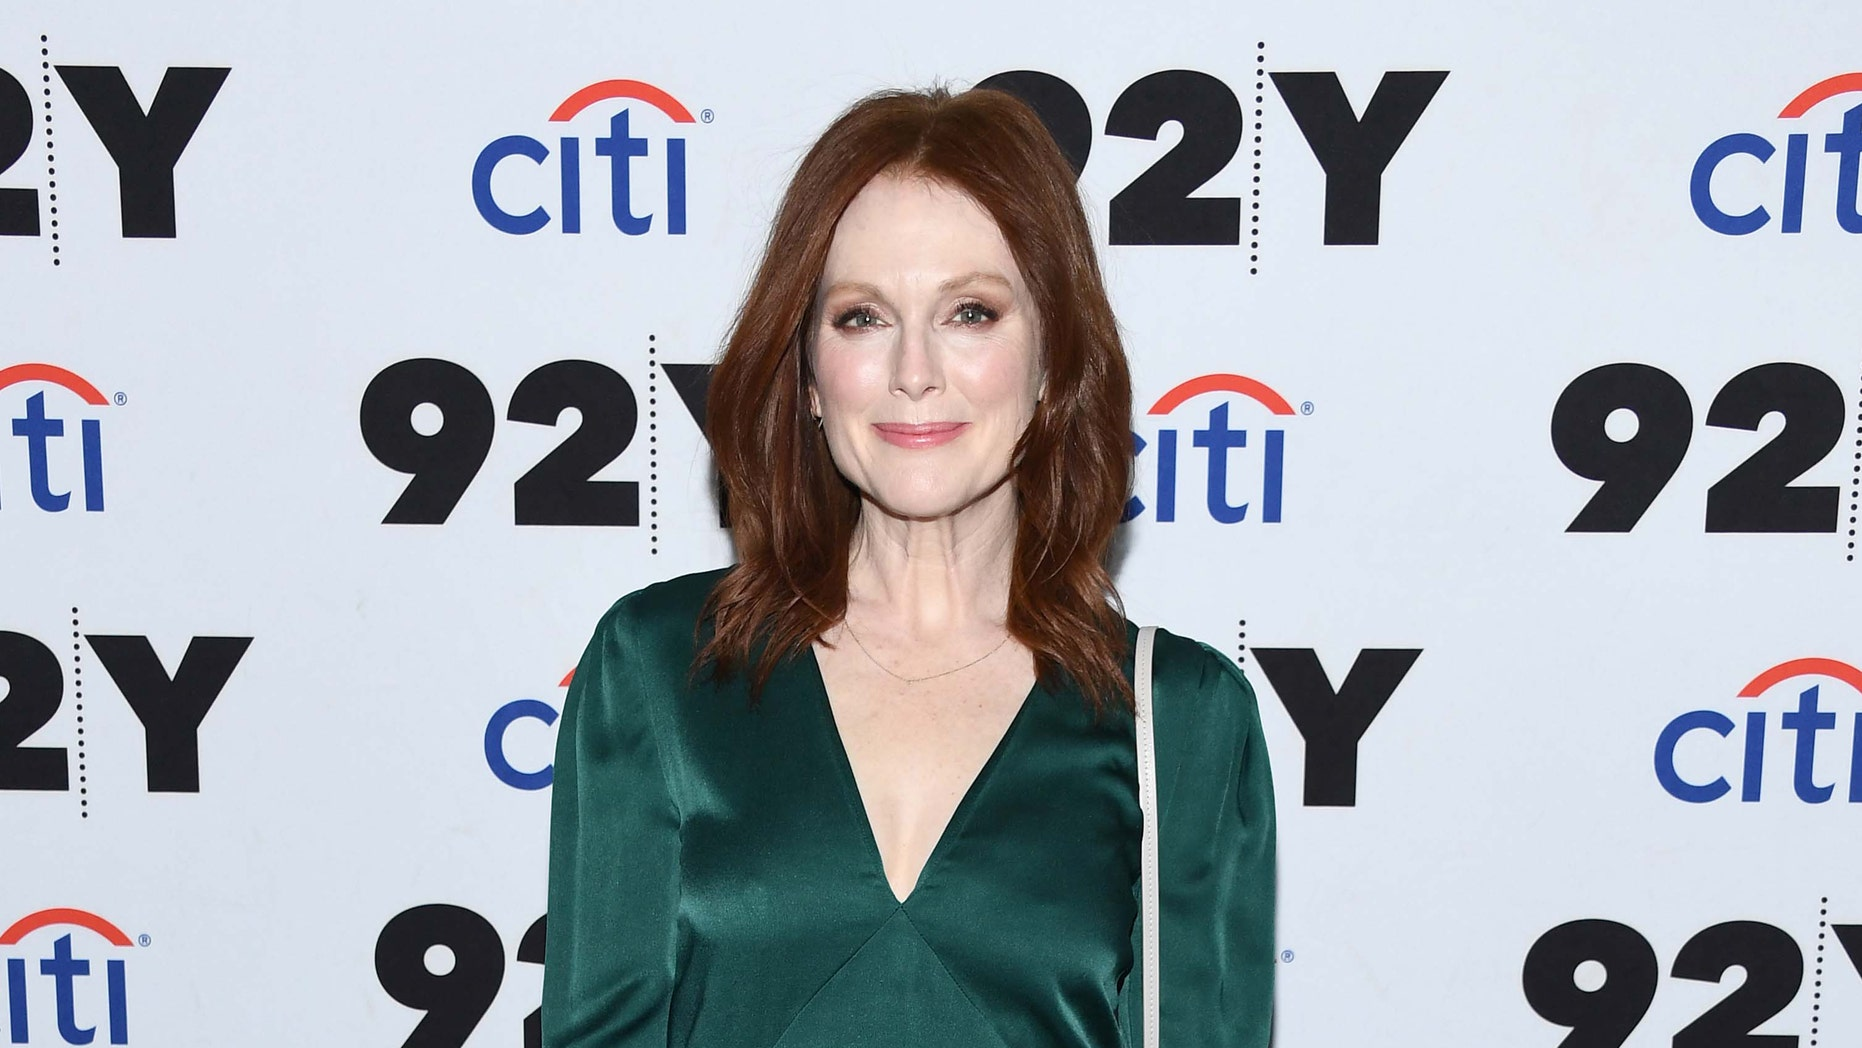 Julianne Moore Opens Up About Filming Sex Scenes People -8603